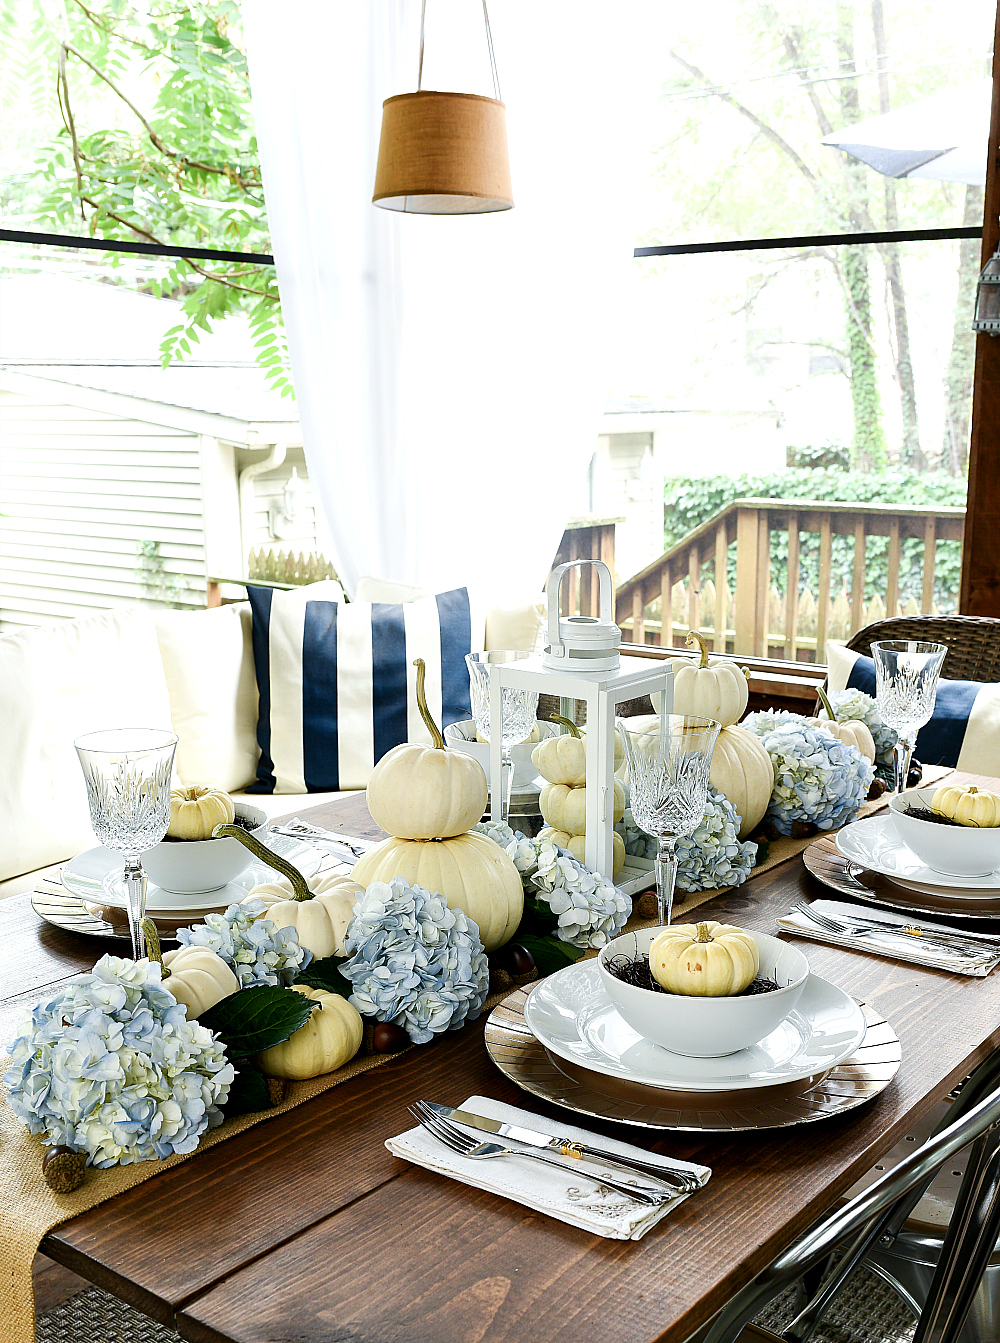 Fall Table Setting Centerpiece White Pumpkins Hydrangea 2 26 Of 29 It All Started With Paint